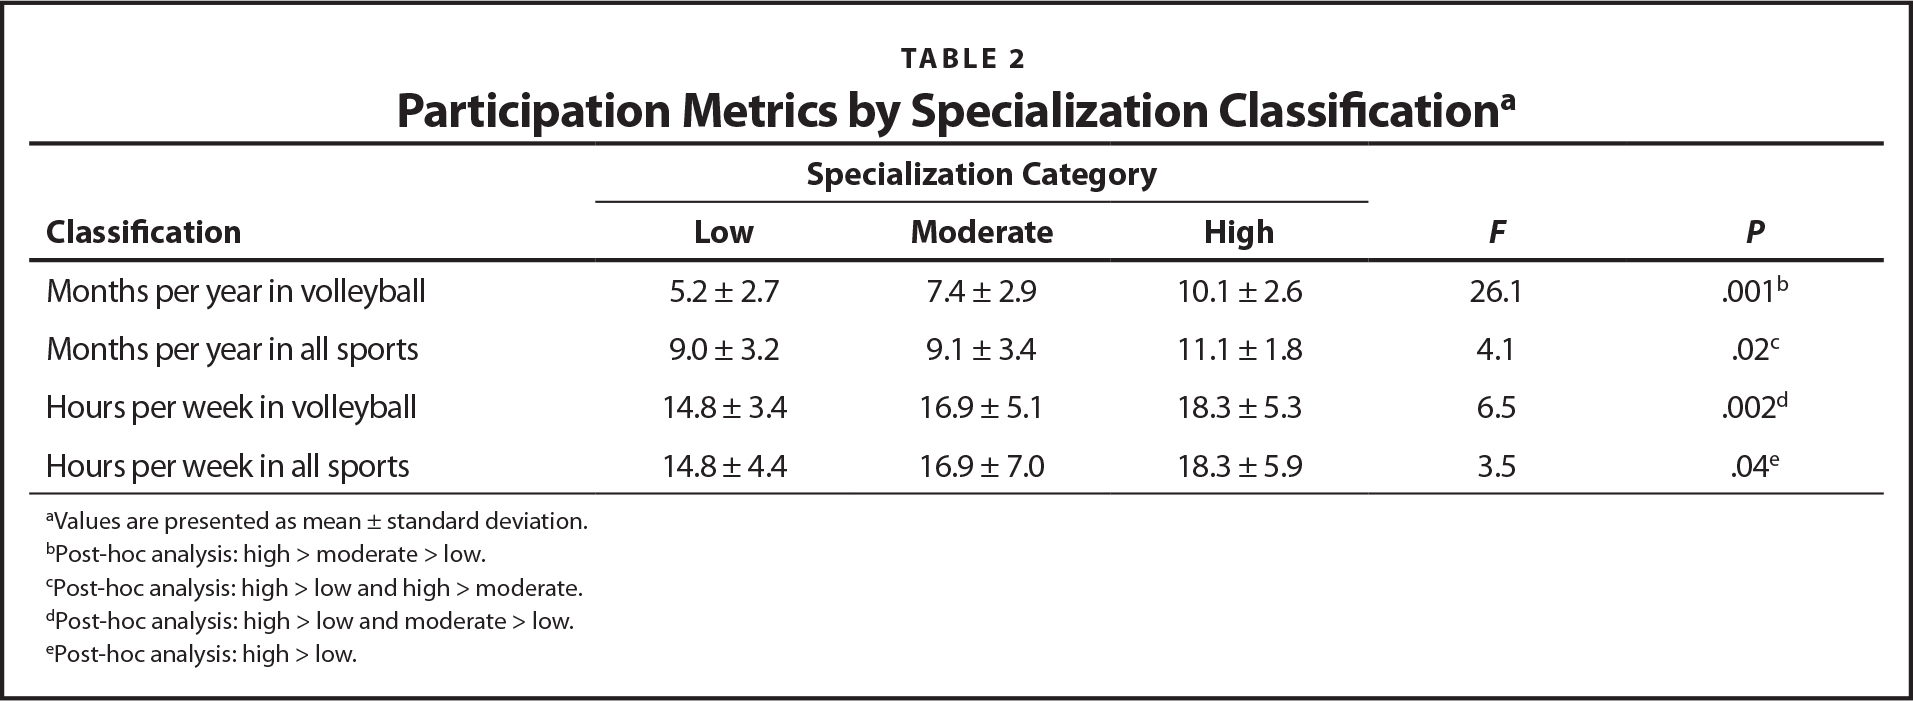 Participation Metrics by Specialization Classificationa